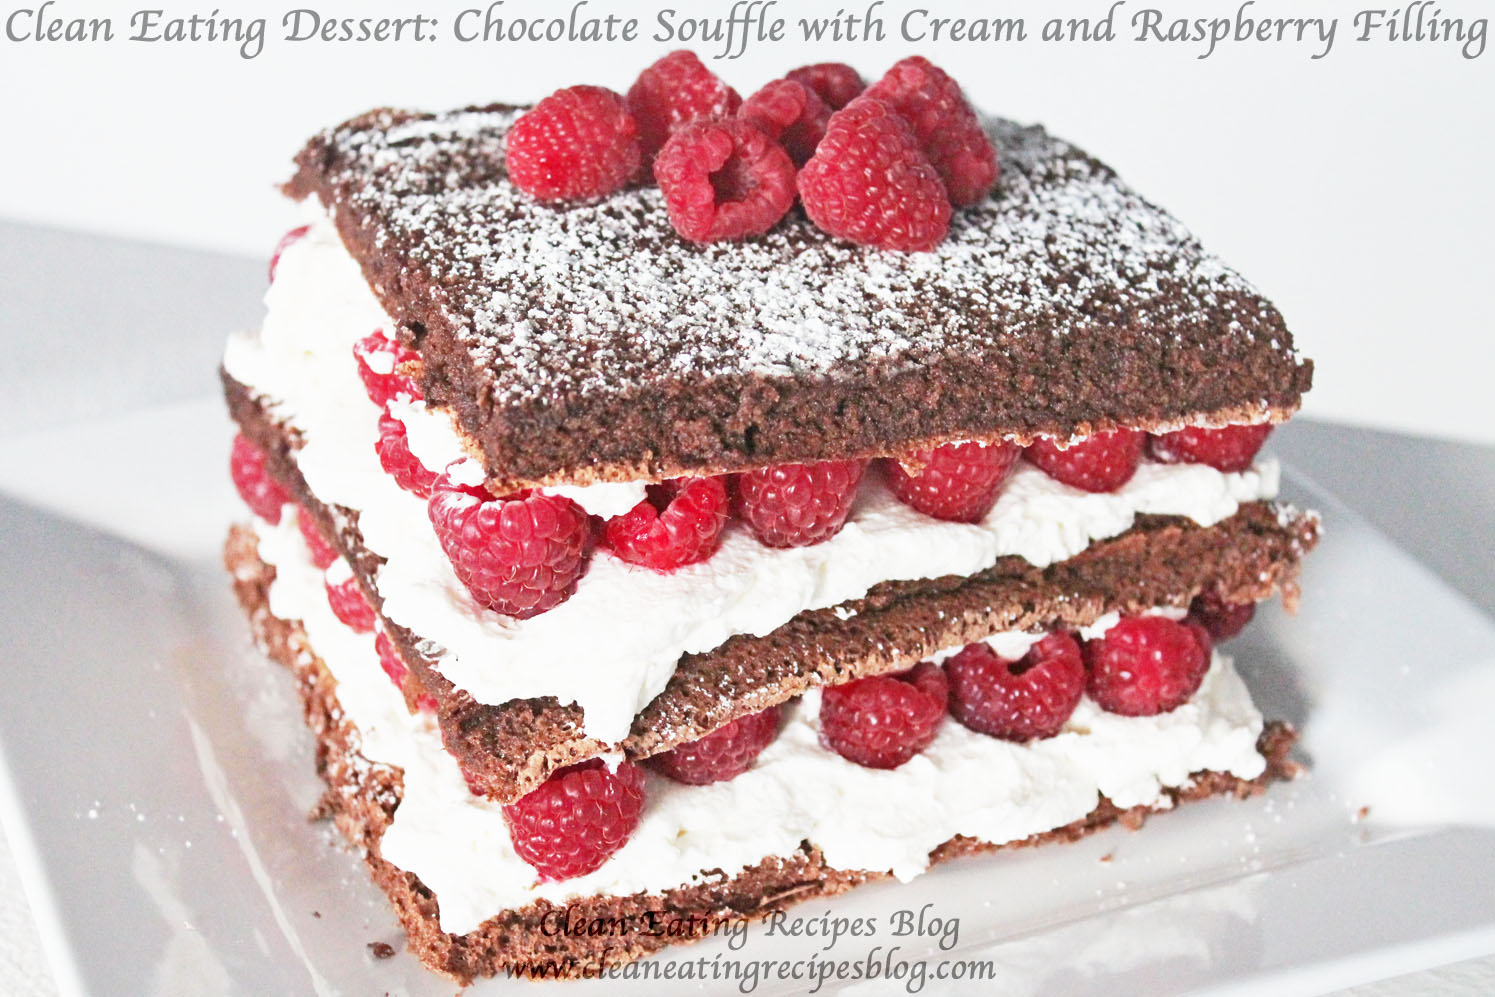 Clean Eating Dessert: Stacked Chocolate Soufflé with Cream Raspberry Filling